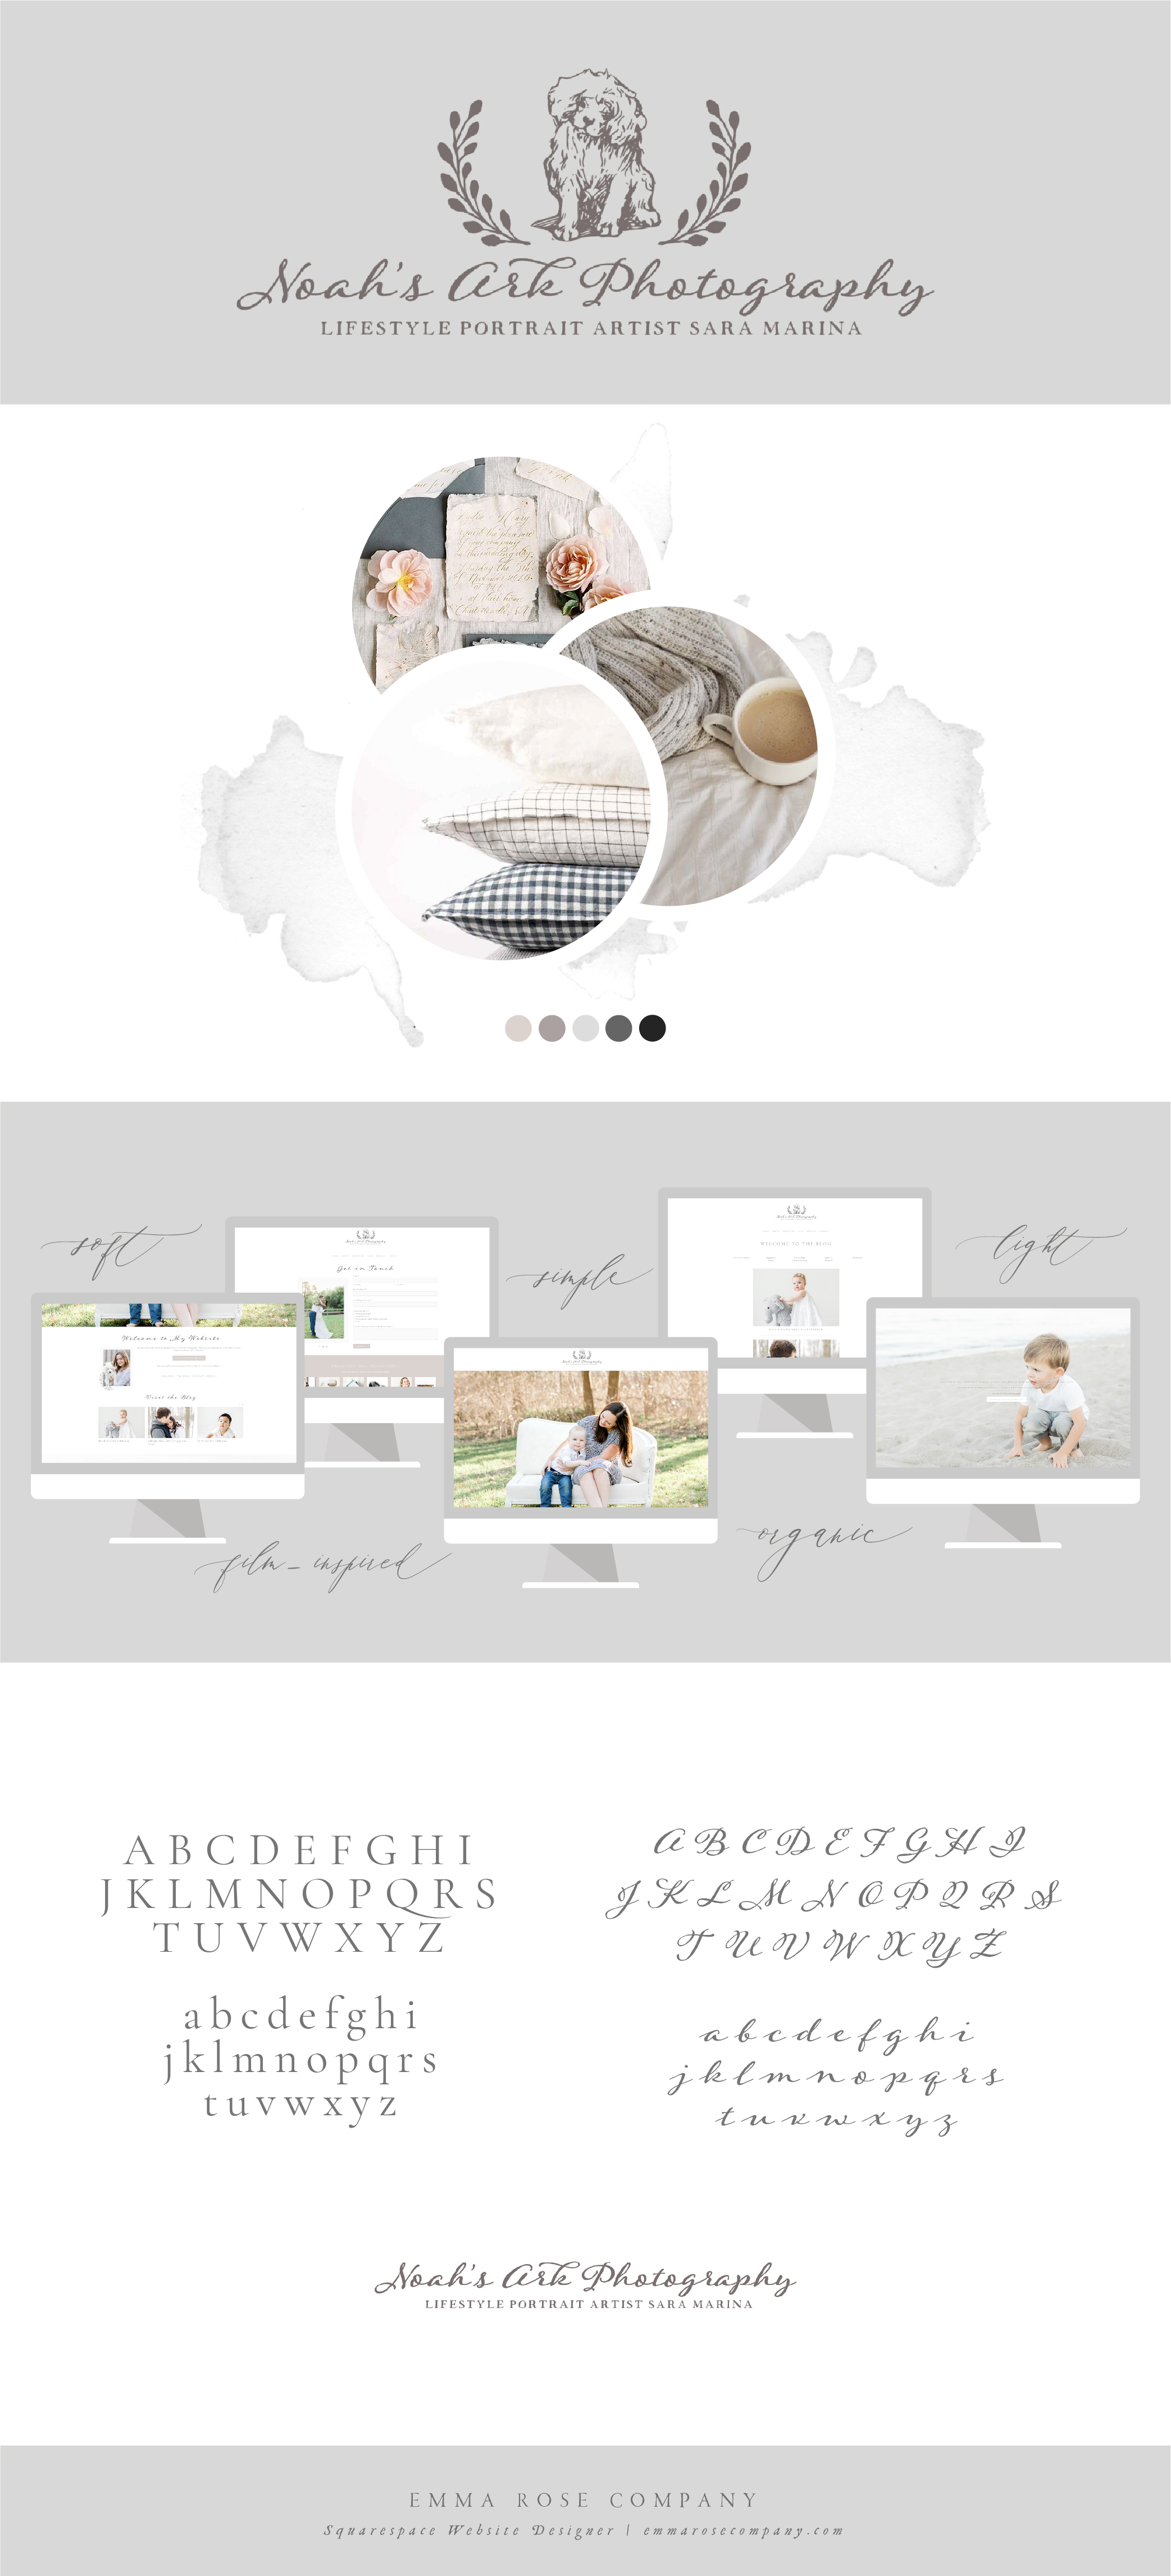 Noah's Ark Photography | ERC Project Showcase | Branding Board Inspiration | Squarespace Website Designer for Photographers